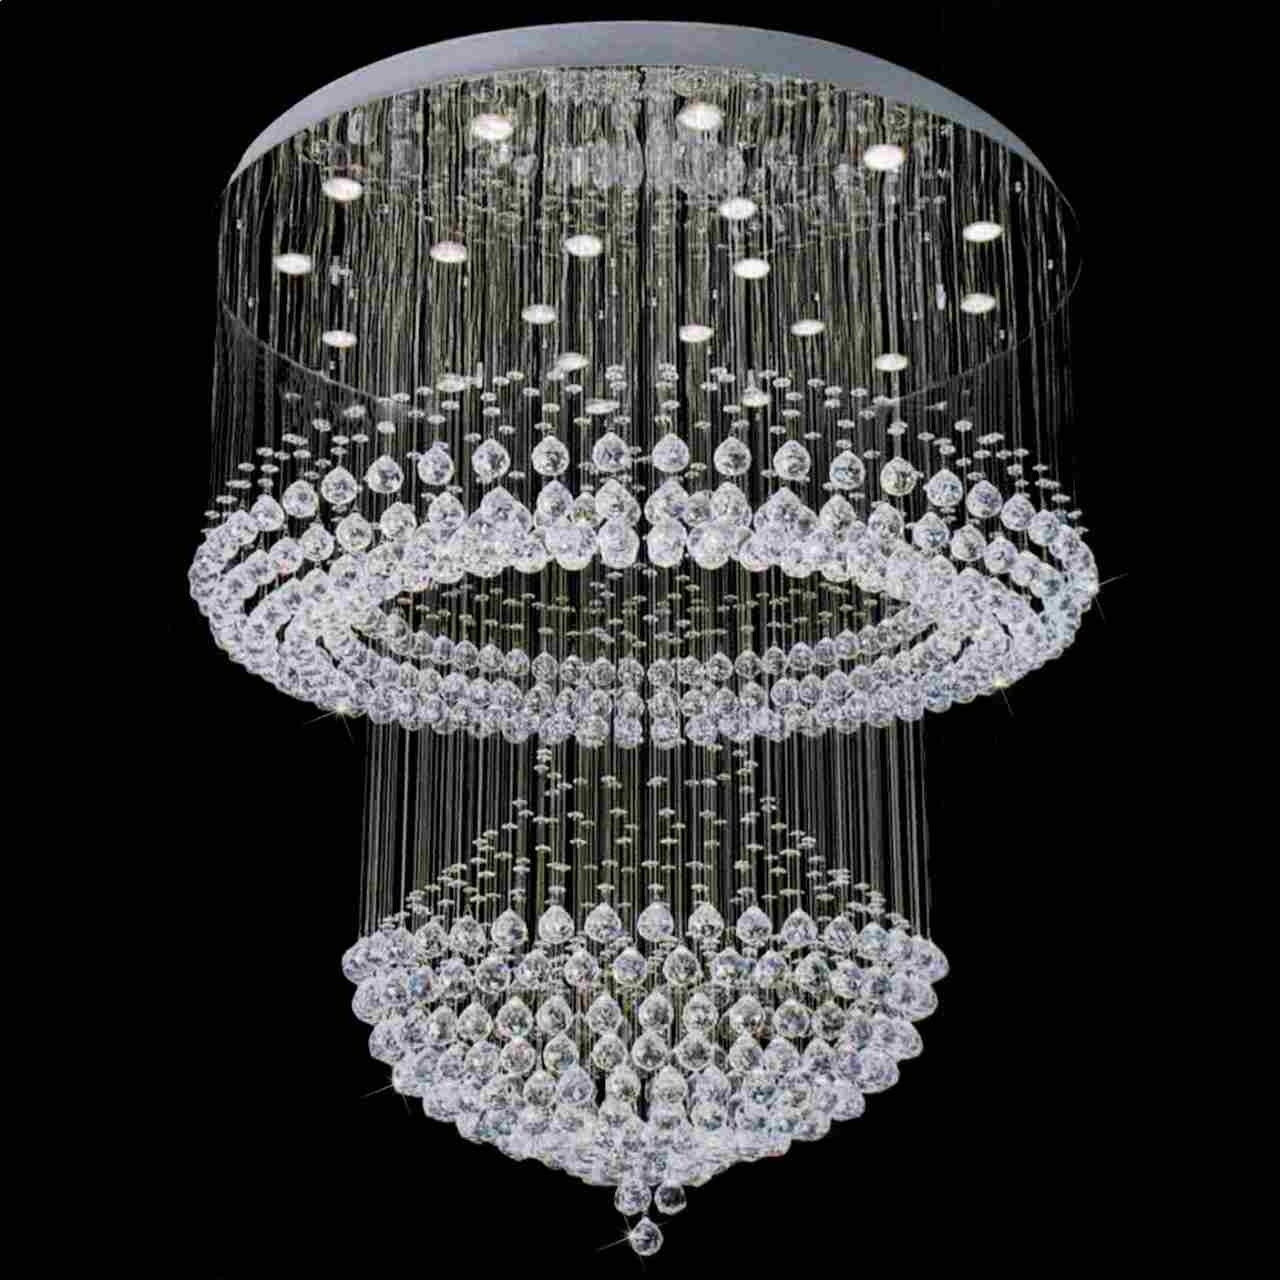 Vienna Crystal Chandeliers Regarding Widely Used Home Design : Mesmerizing Modern Crystal Chandeliers Innovative (View 15 of 20)